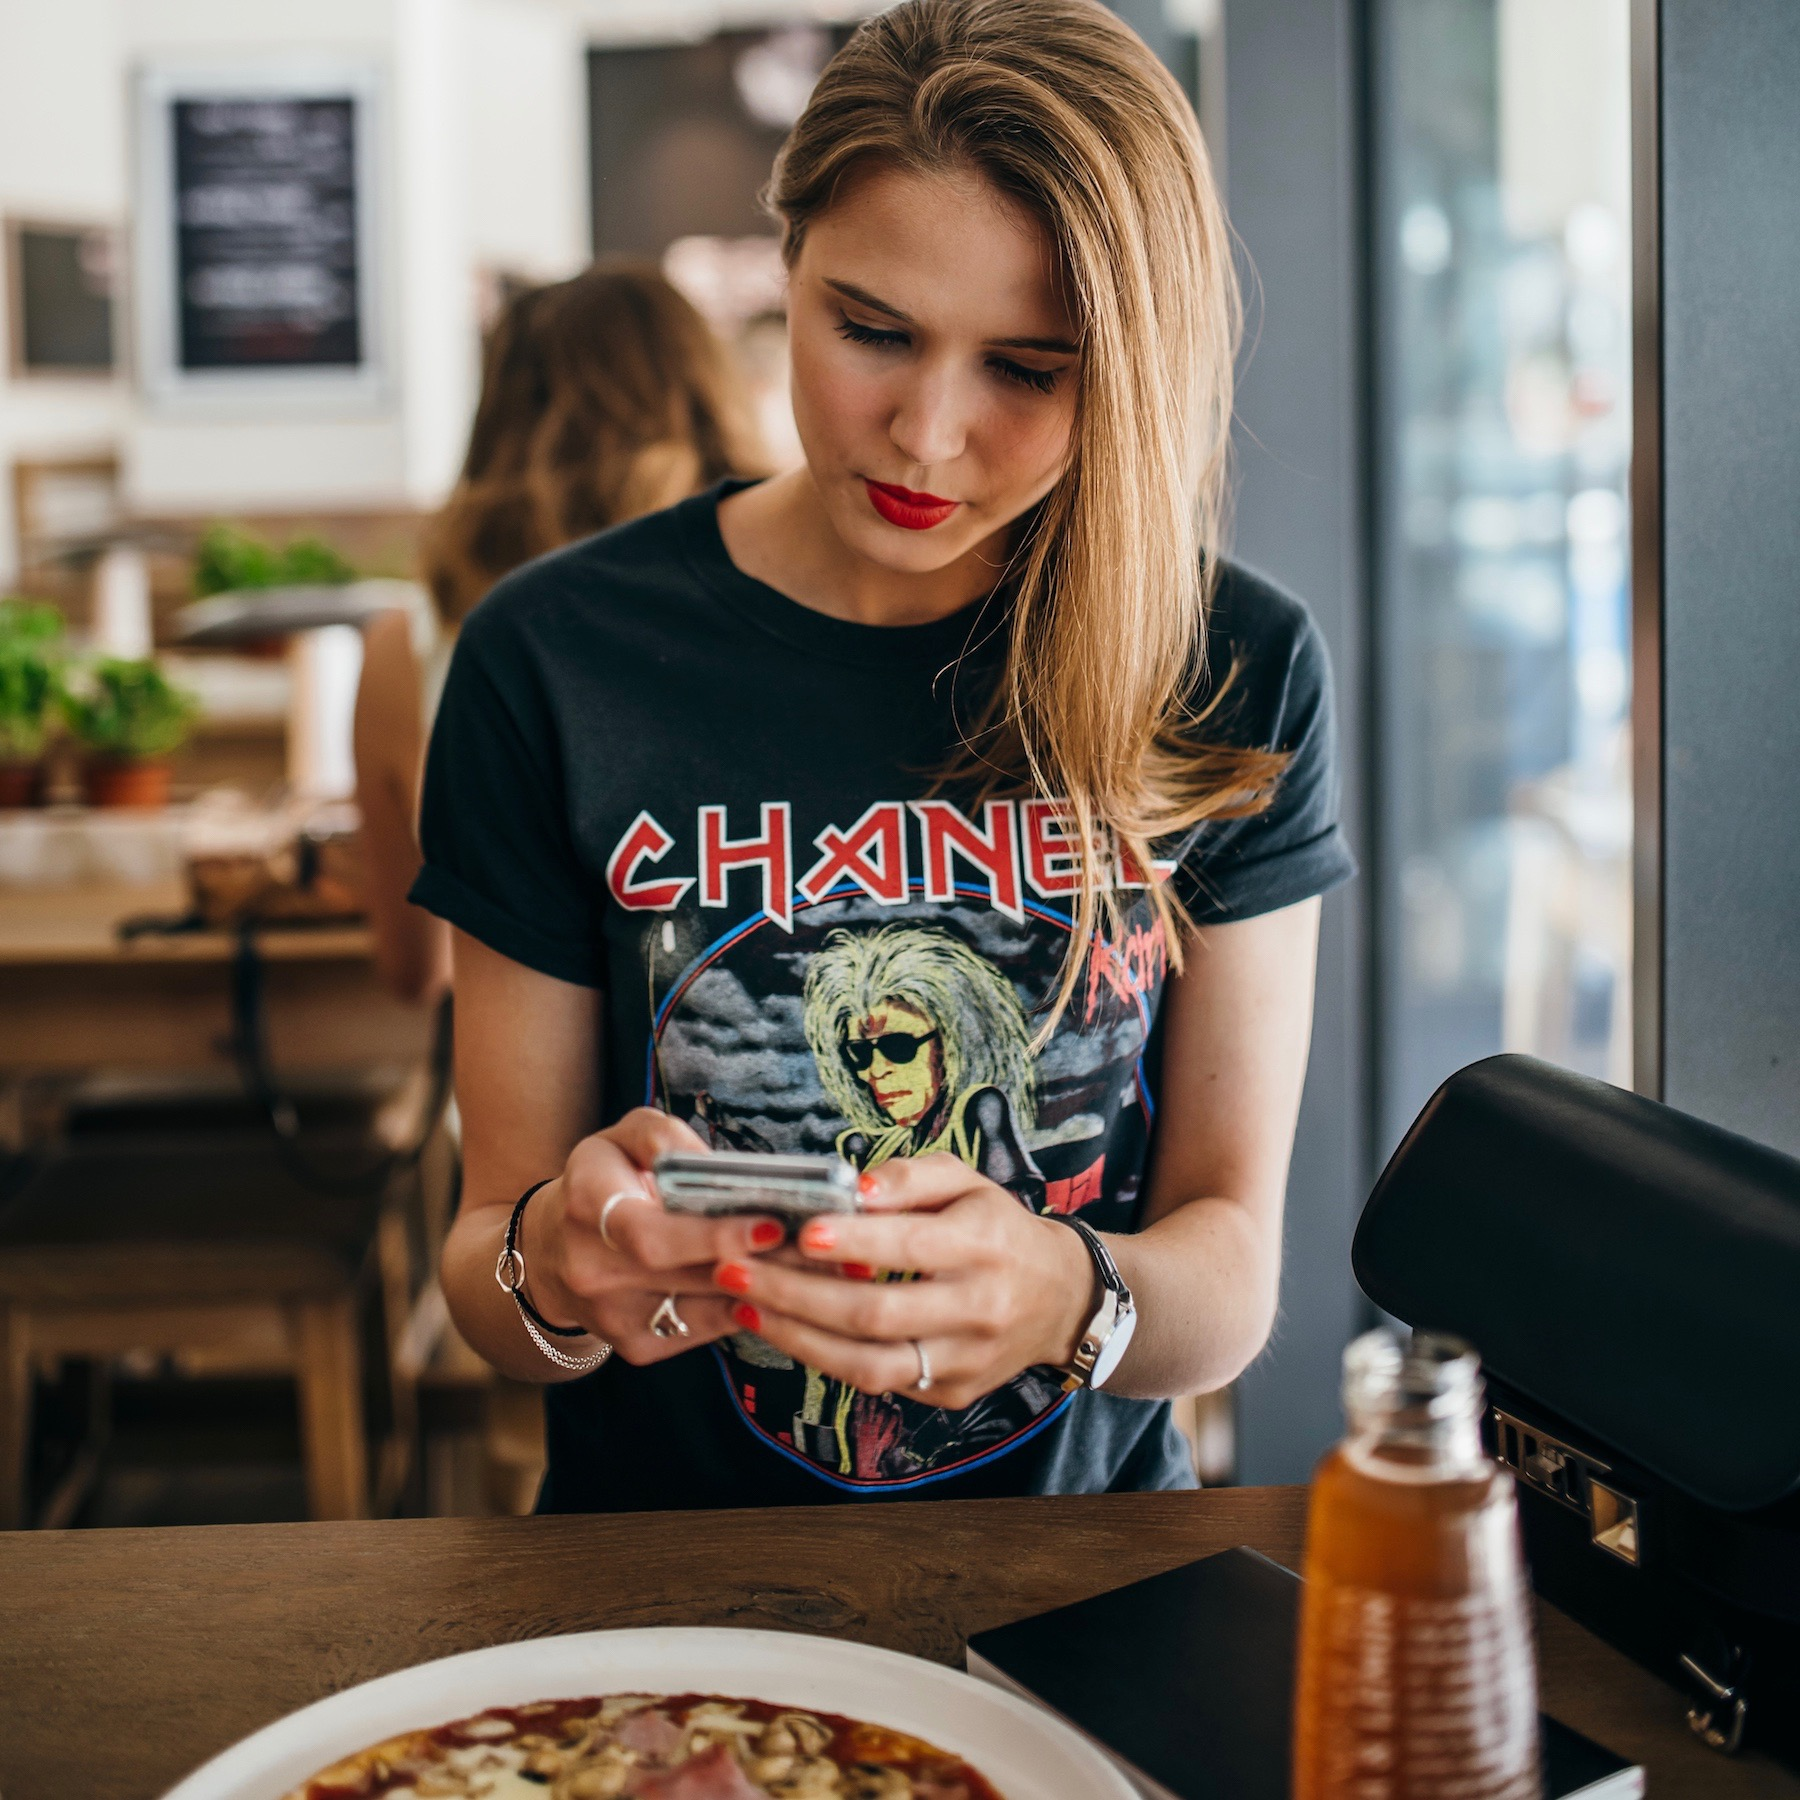 mit der vapiano app bezahlen suelovesnyc_blog_vapiano_app_glutenfreie_pizza_hamburg_business_lunch (1)